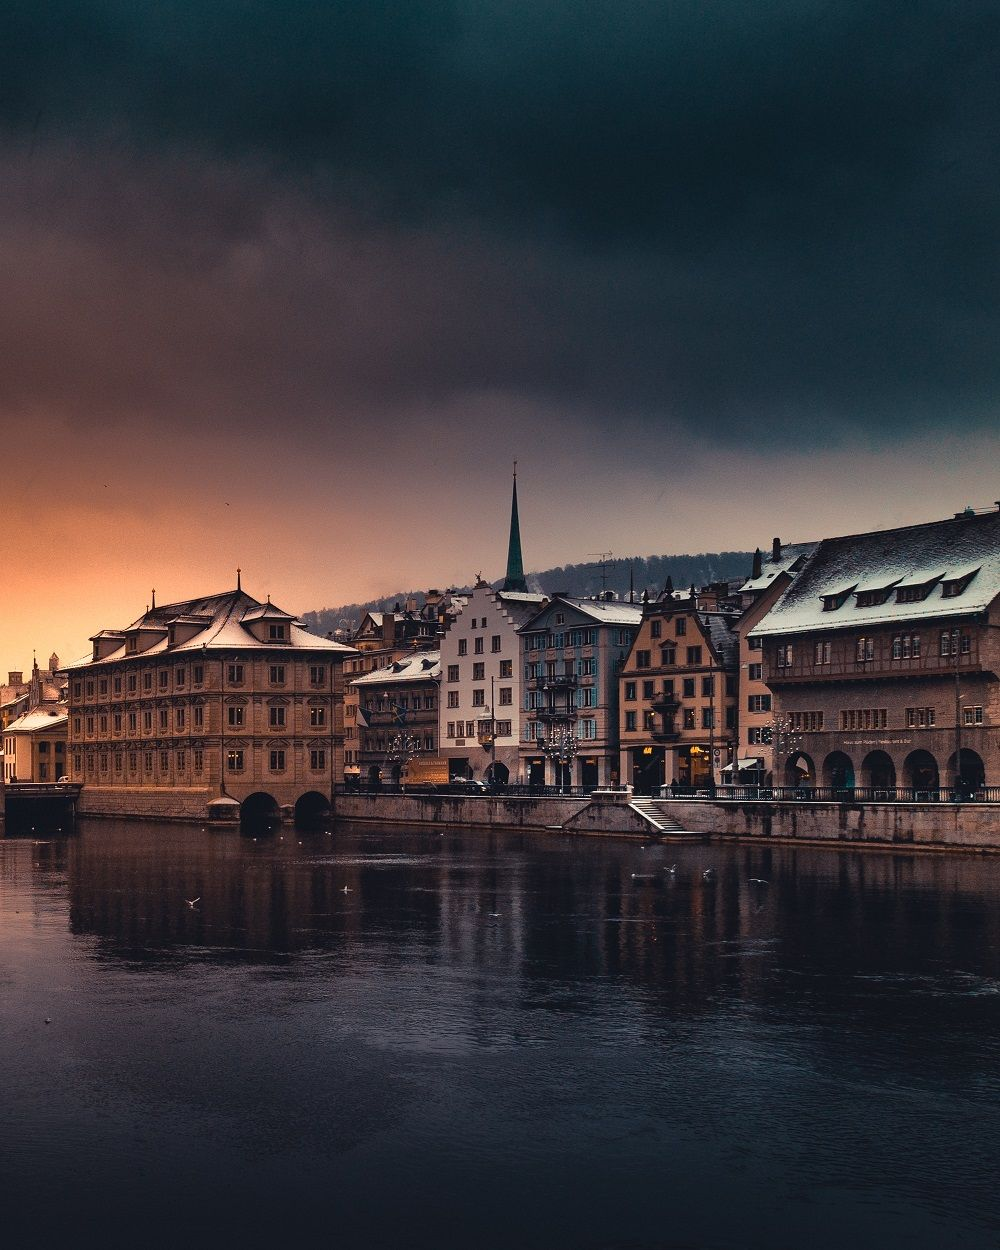 zurich-3rd-most-expensive-city-in-world